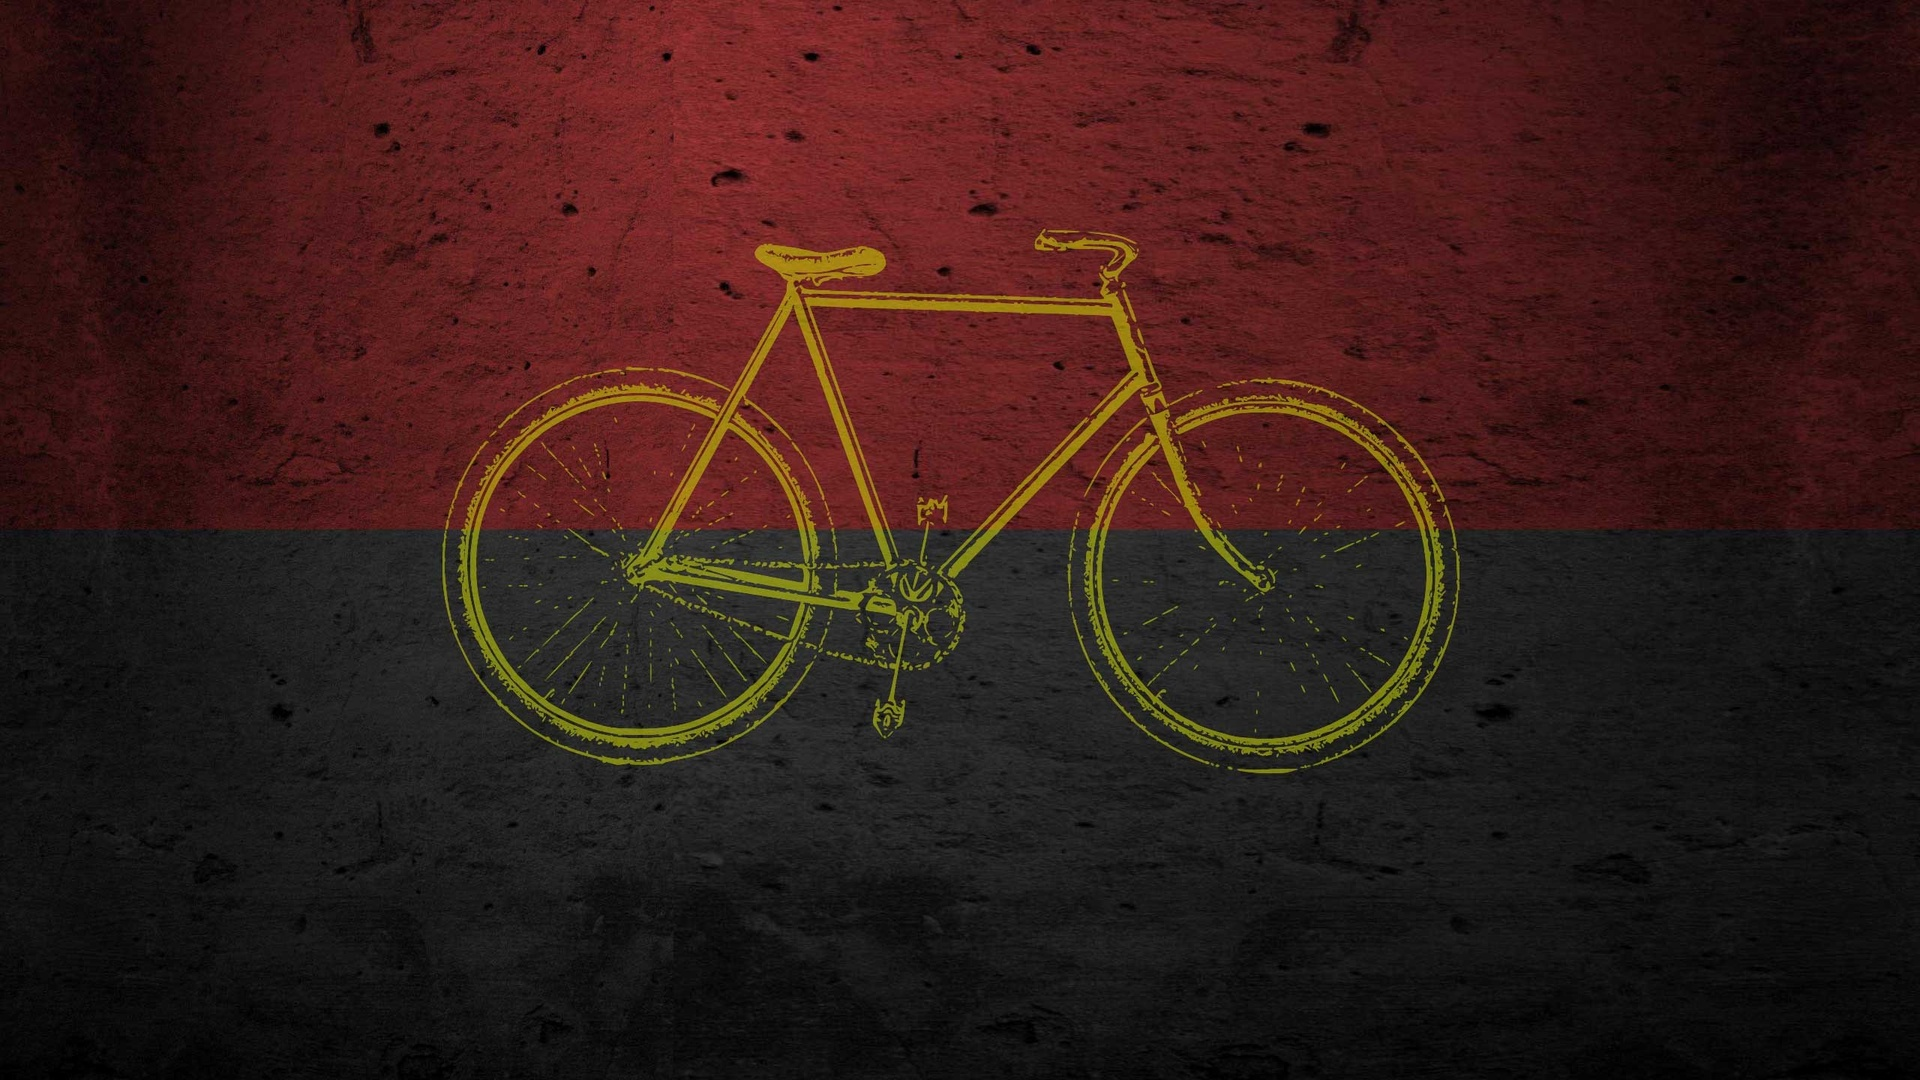 Bicycle Images